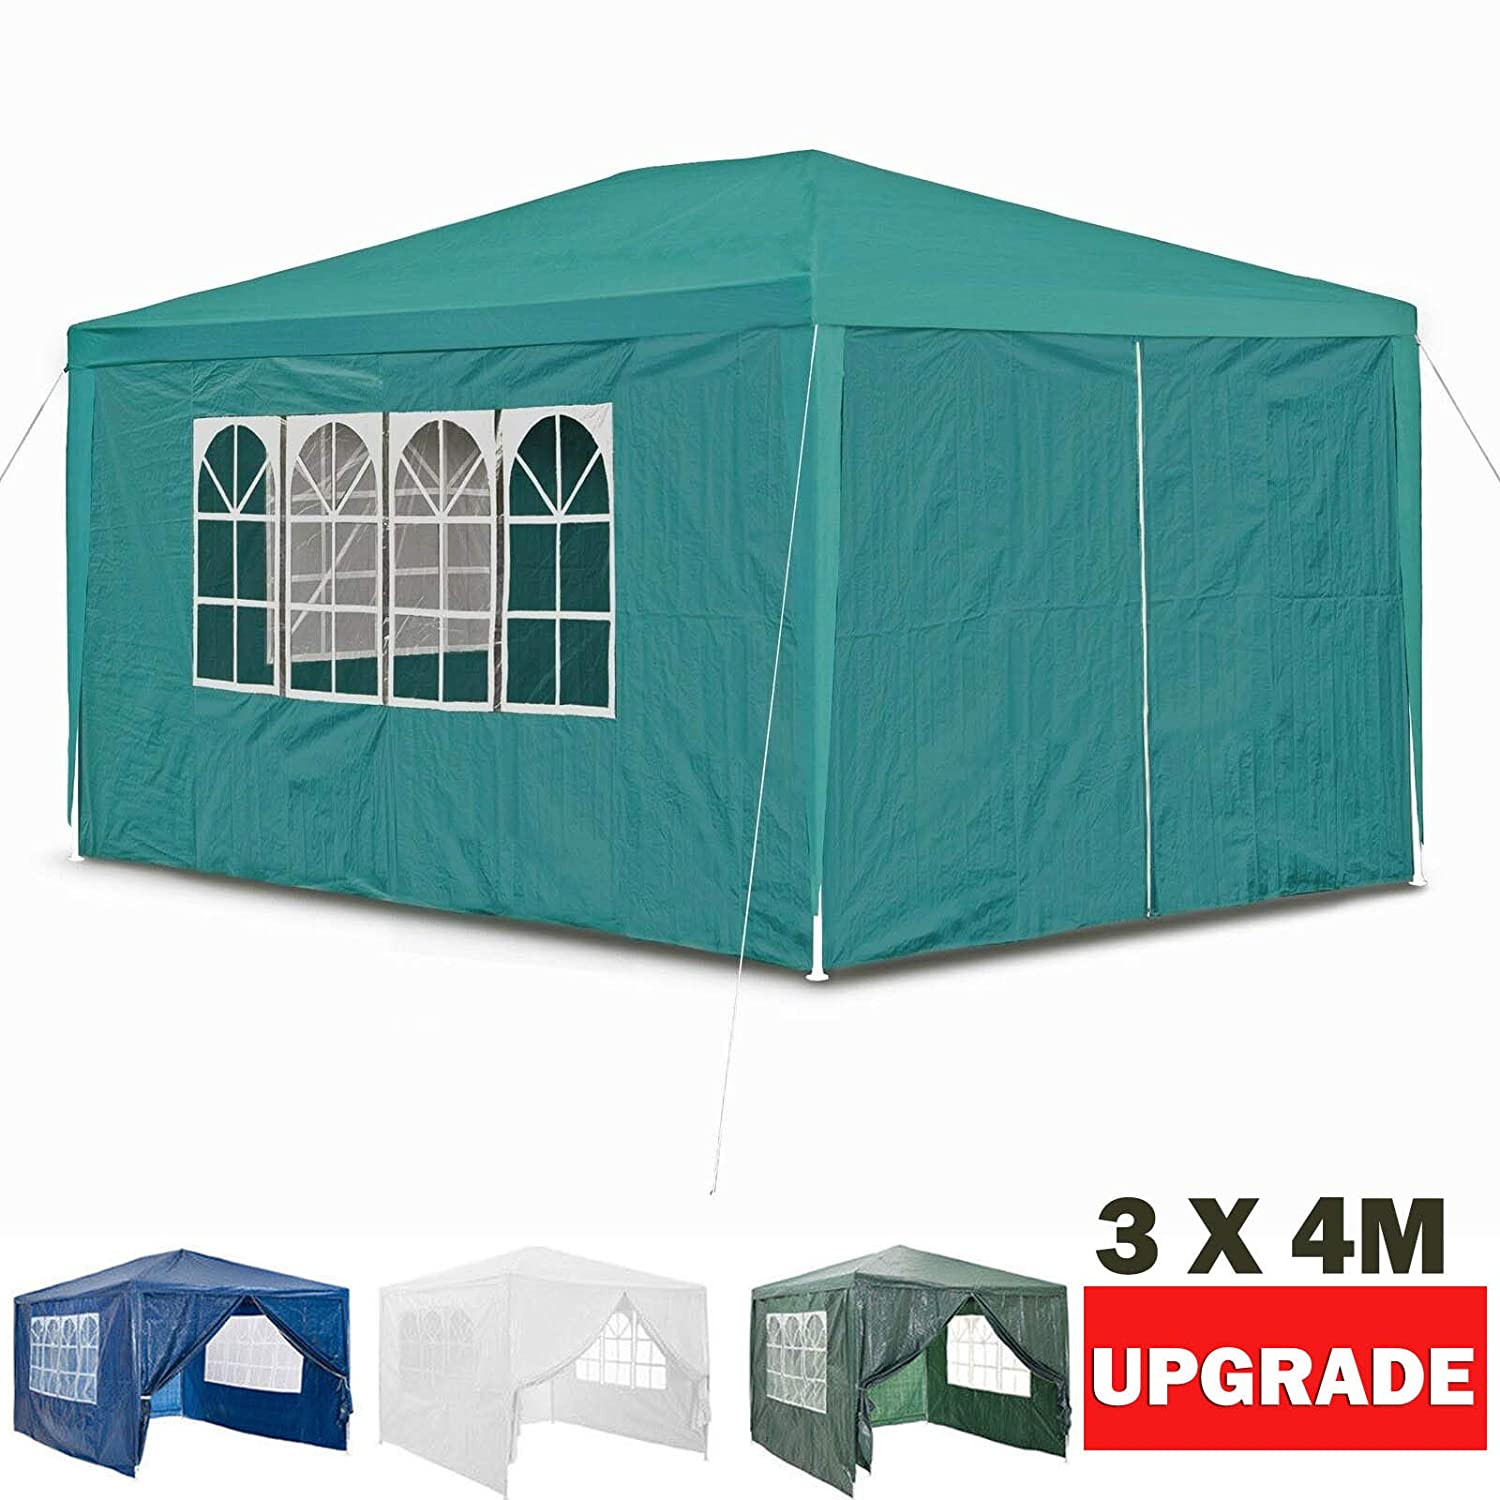 Gazebos Fully Sides Gazeebo Party Tent Events Shelters Waterproof Marquee Gazibo